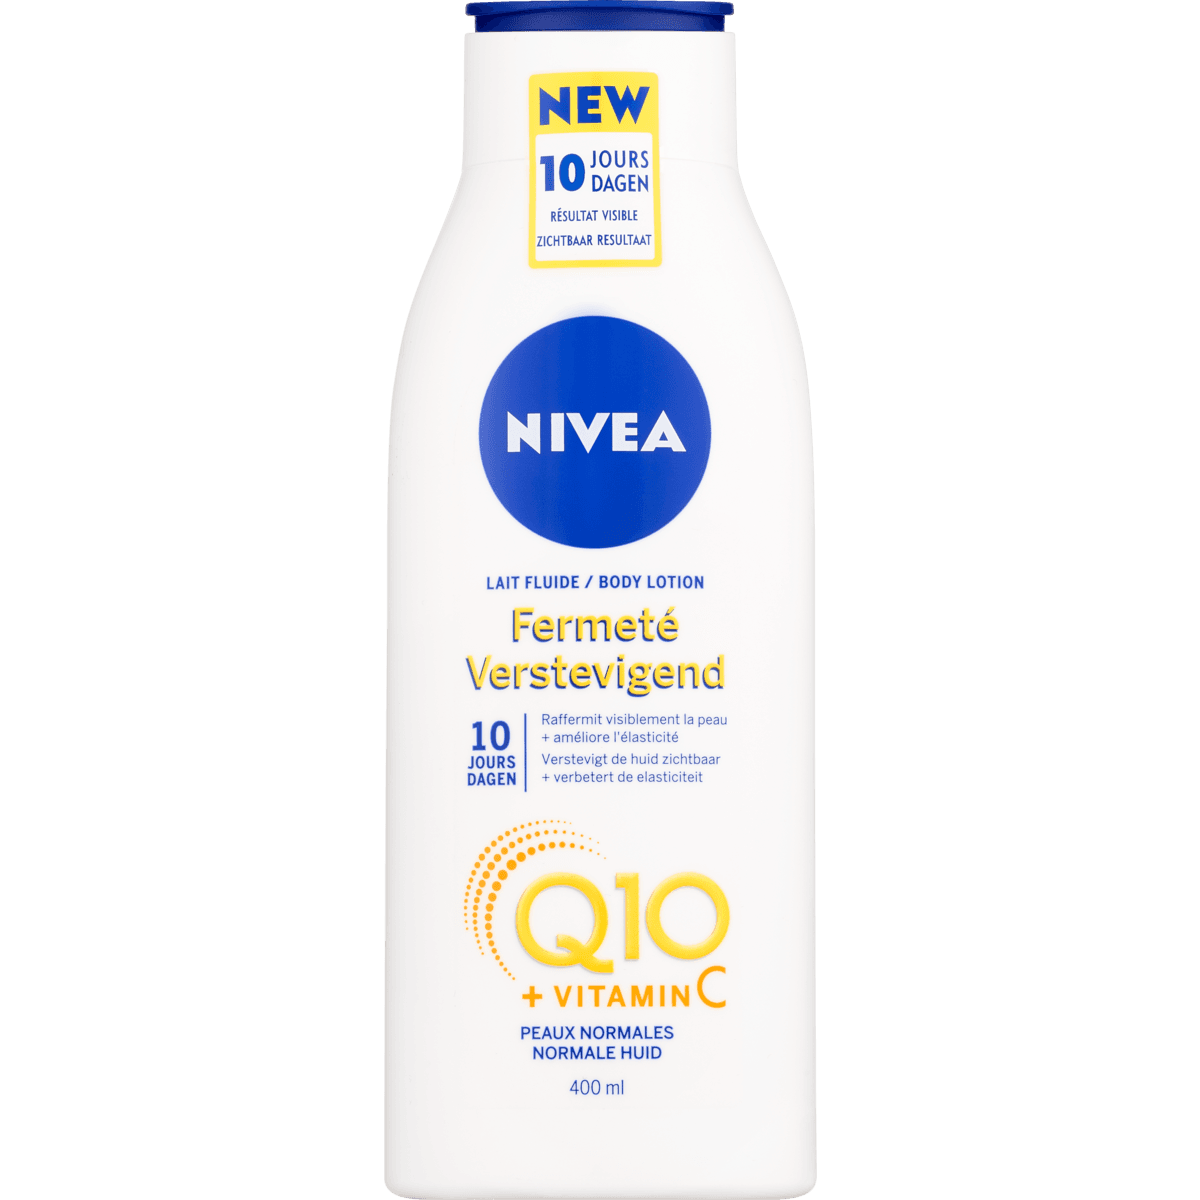 Nivea Q10 Verstevigende Body Lotion | Body lotion, Lotion, Beauty